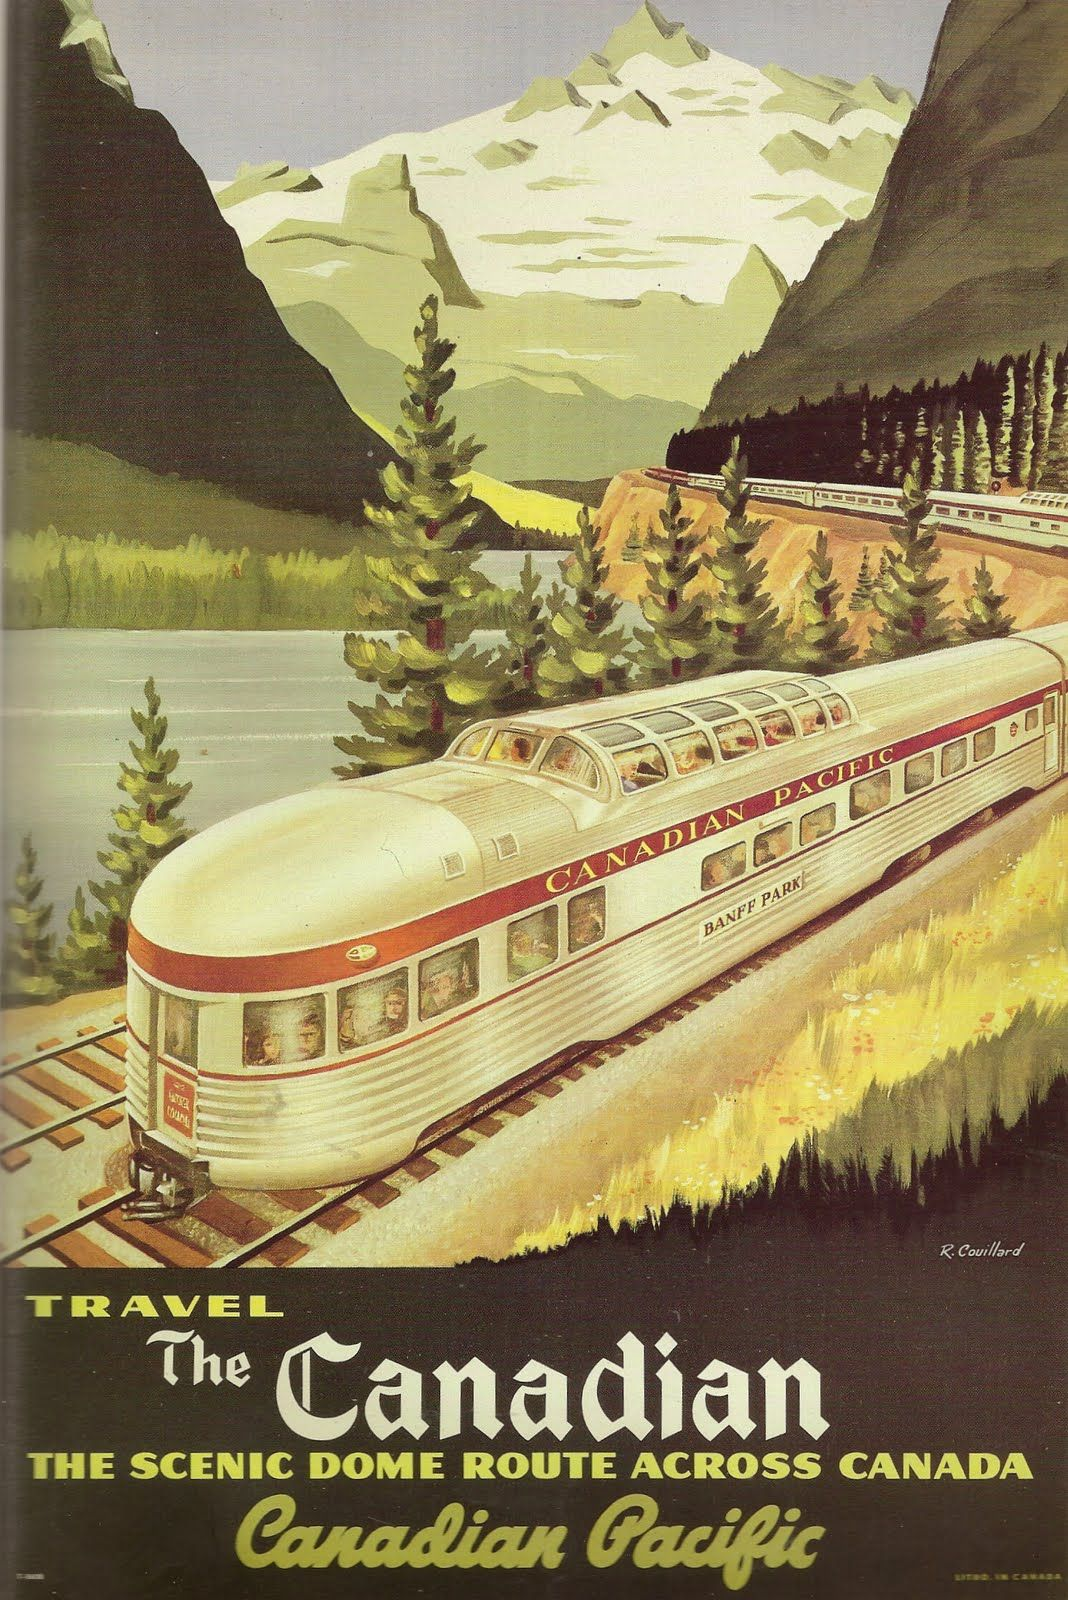 Canadian Pacific Vintage Canada Railroad Train Travel Advertisement Art Poster